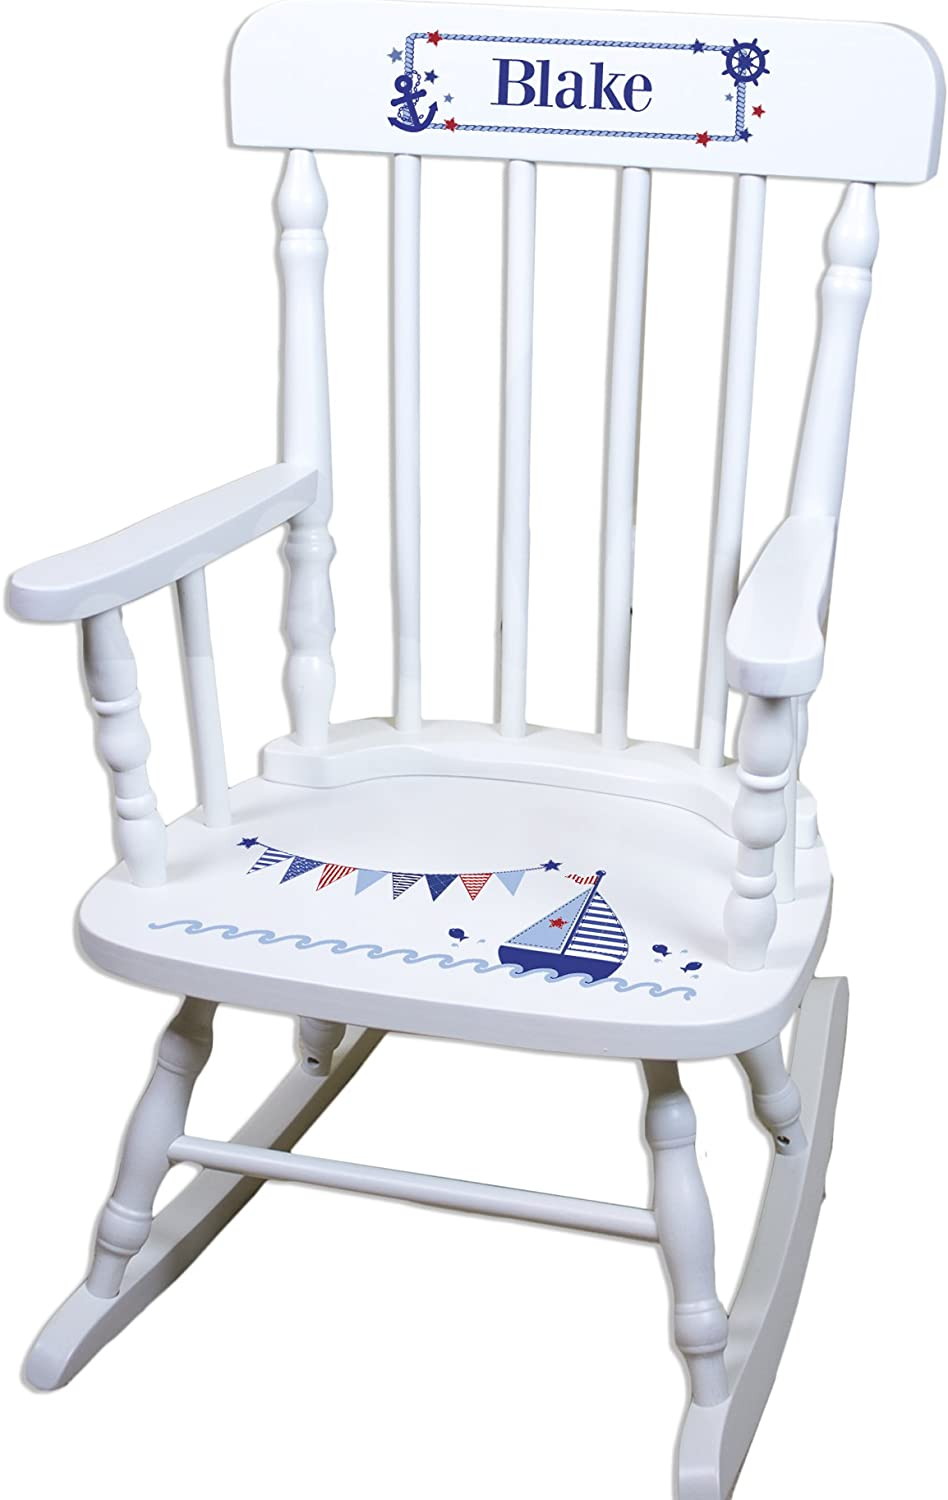 Children's Personalized White Rocking Popularity Sailboat Popular brand Chair